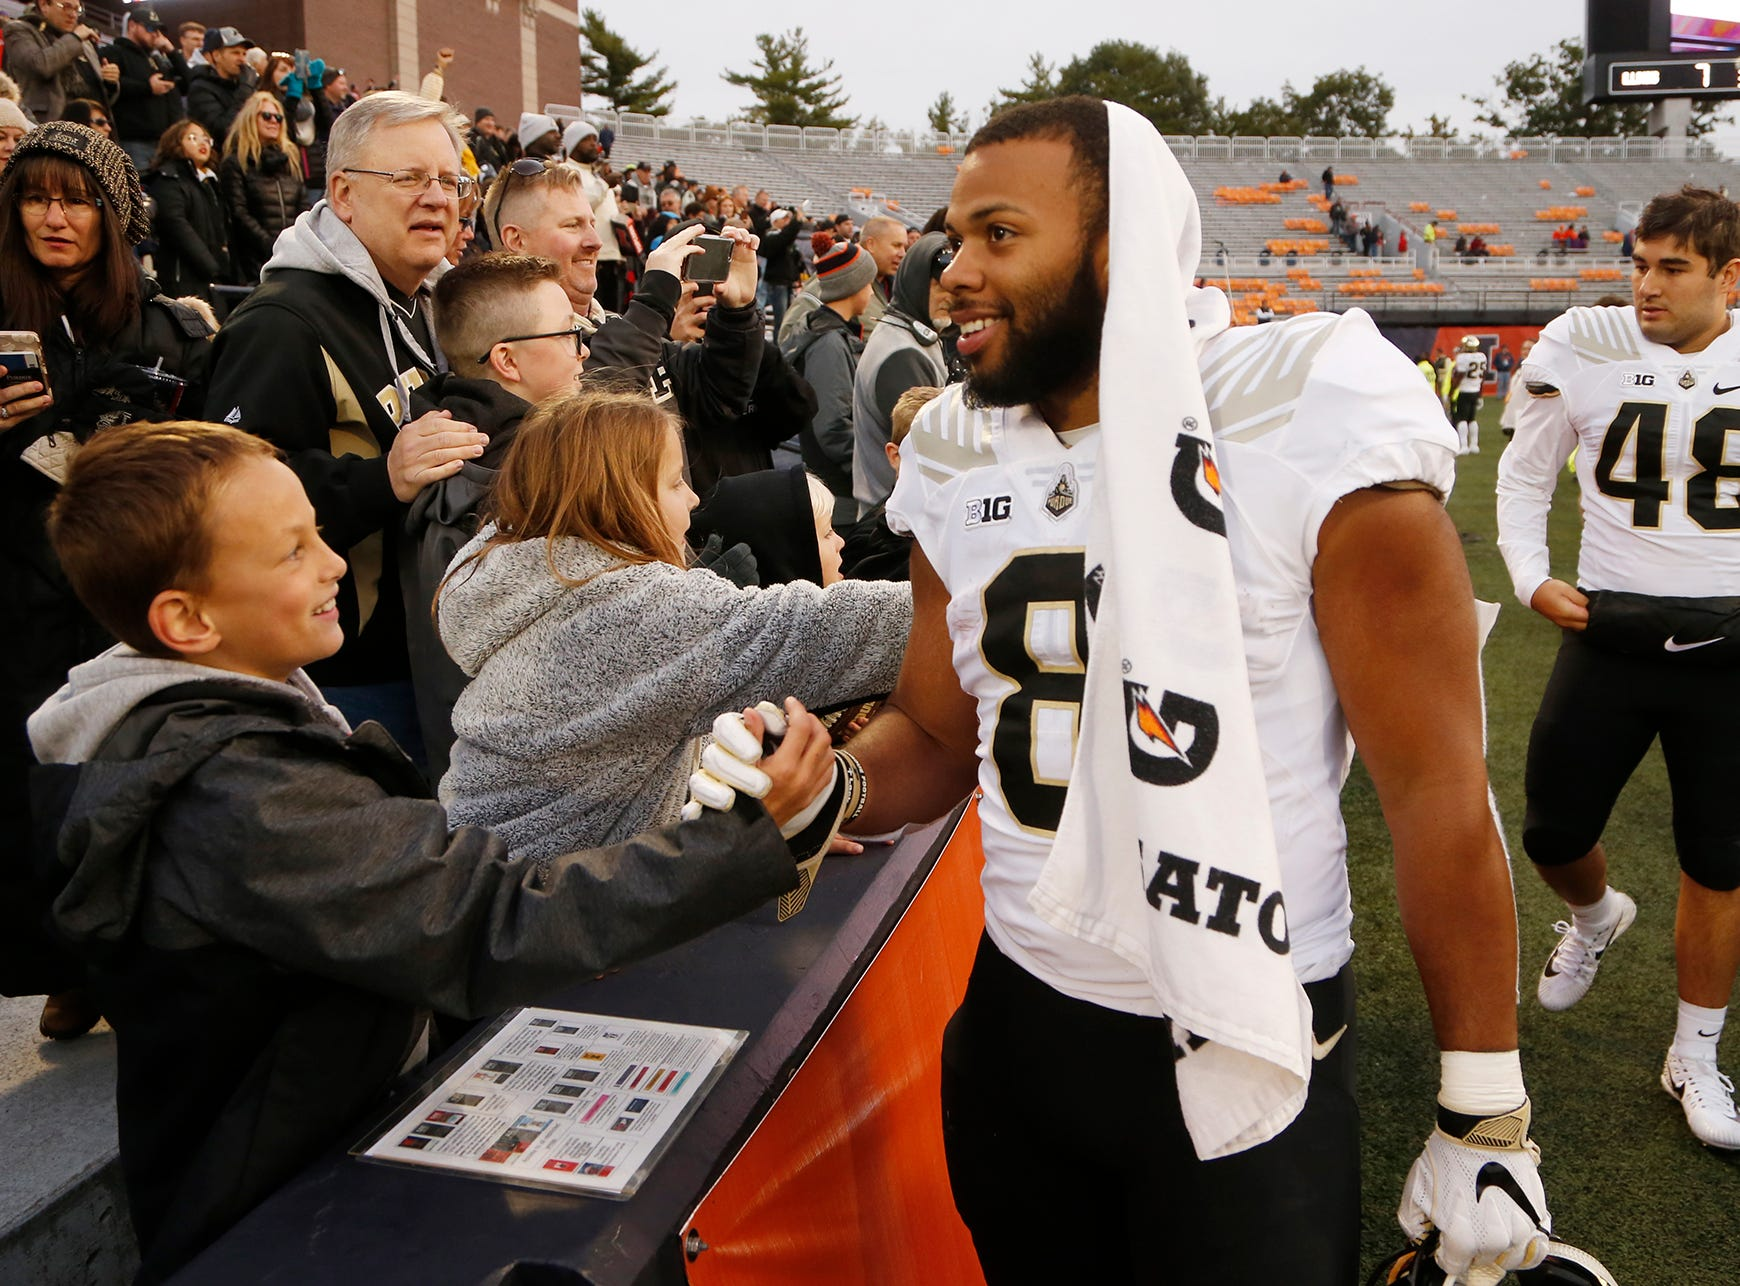 Markell Jones shakes hands with the Purdue faithful after the Boilermakers drubbed Illinois 46-7 Saturday, October 13, 2018, in Champaign, Illinois.